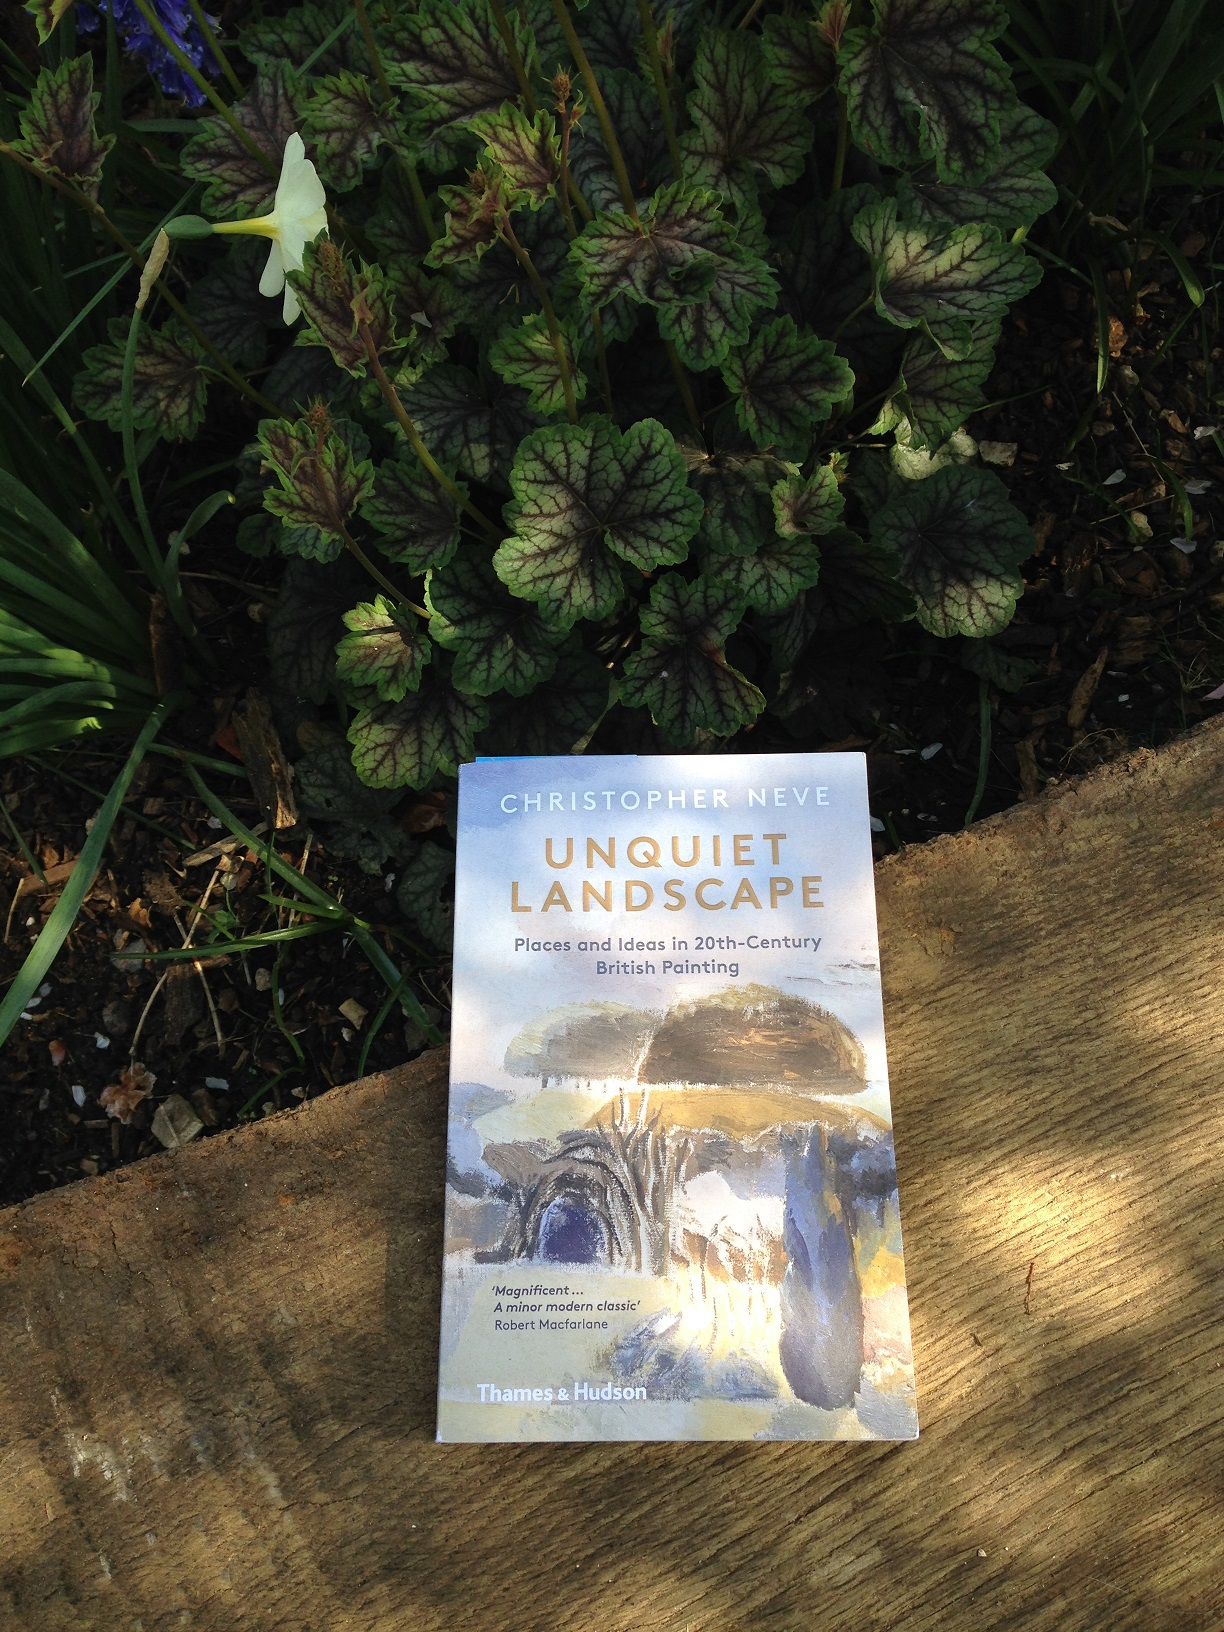 A photograph of the Unquiet Landscape book on a wooden bench against foliage in the background.